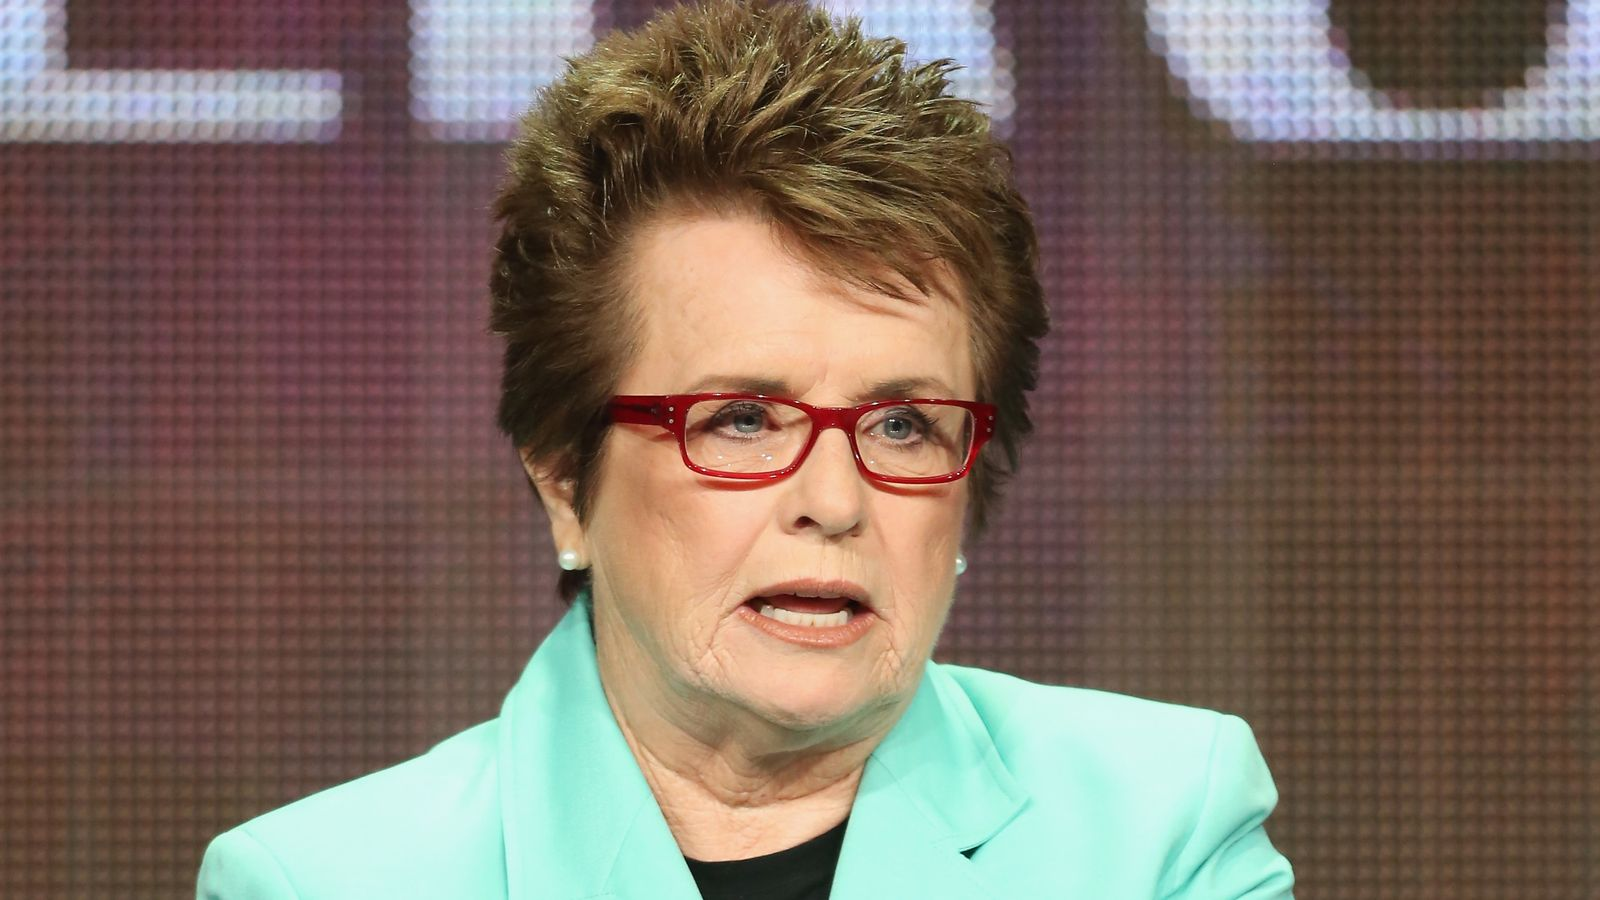 Tennis great Billie Jean King and Olympic ski champion Lindsey Vonn join NWSL's Angel City investors